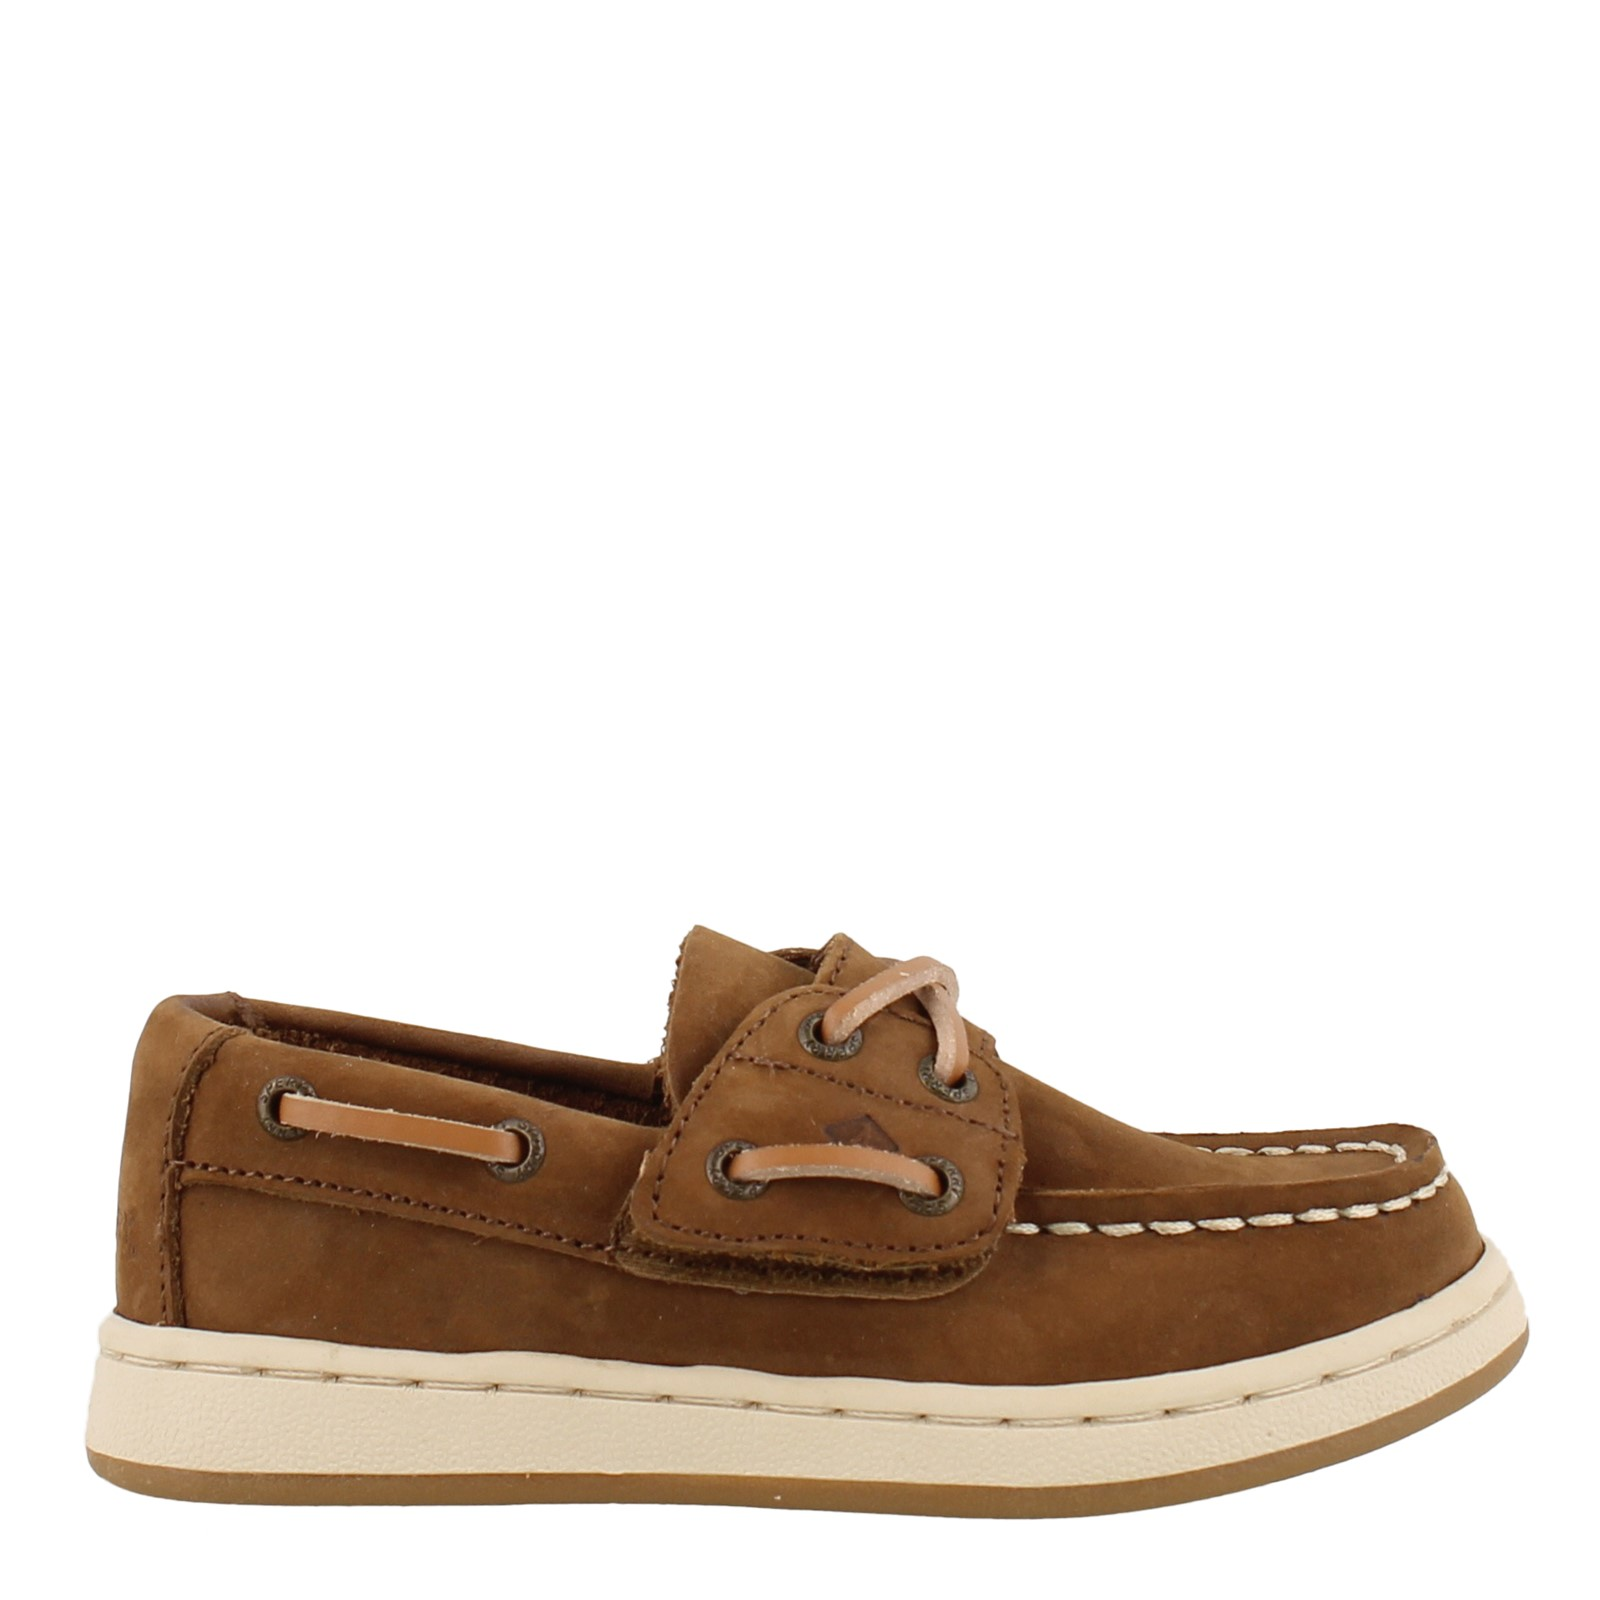 SPERRY Kids Cup Ii Boat Jr Shoe